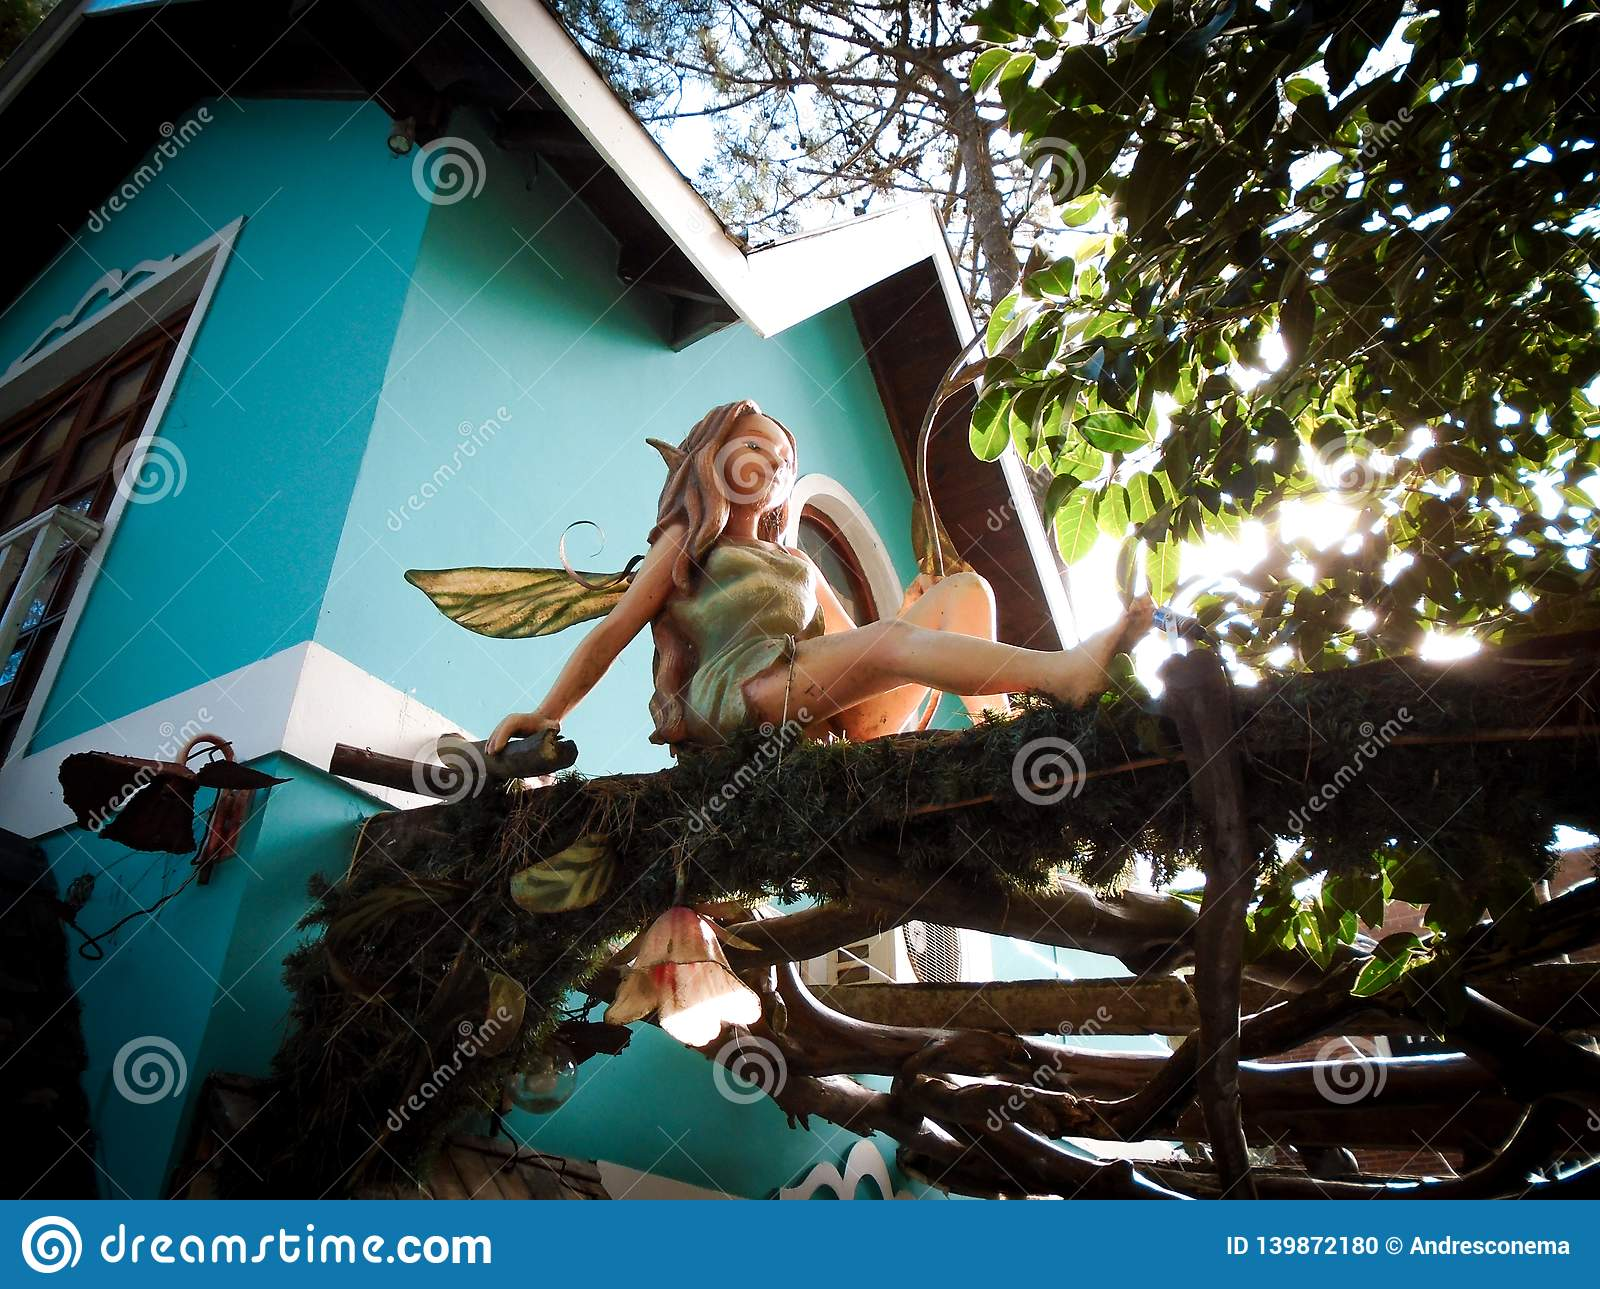 Fairy with dragonfly wings sitting at a wooden pergola